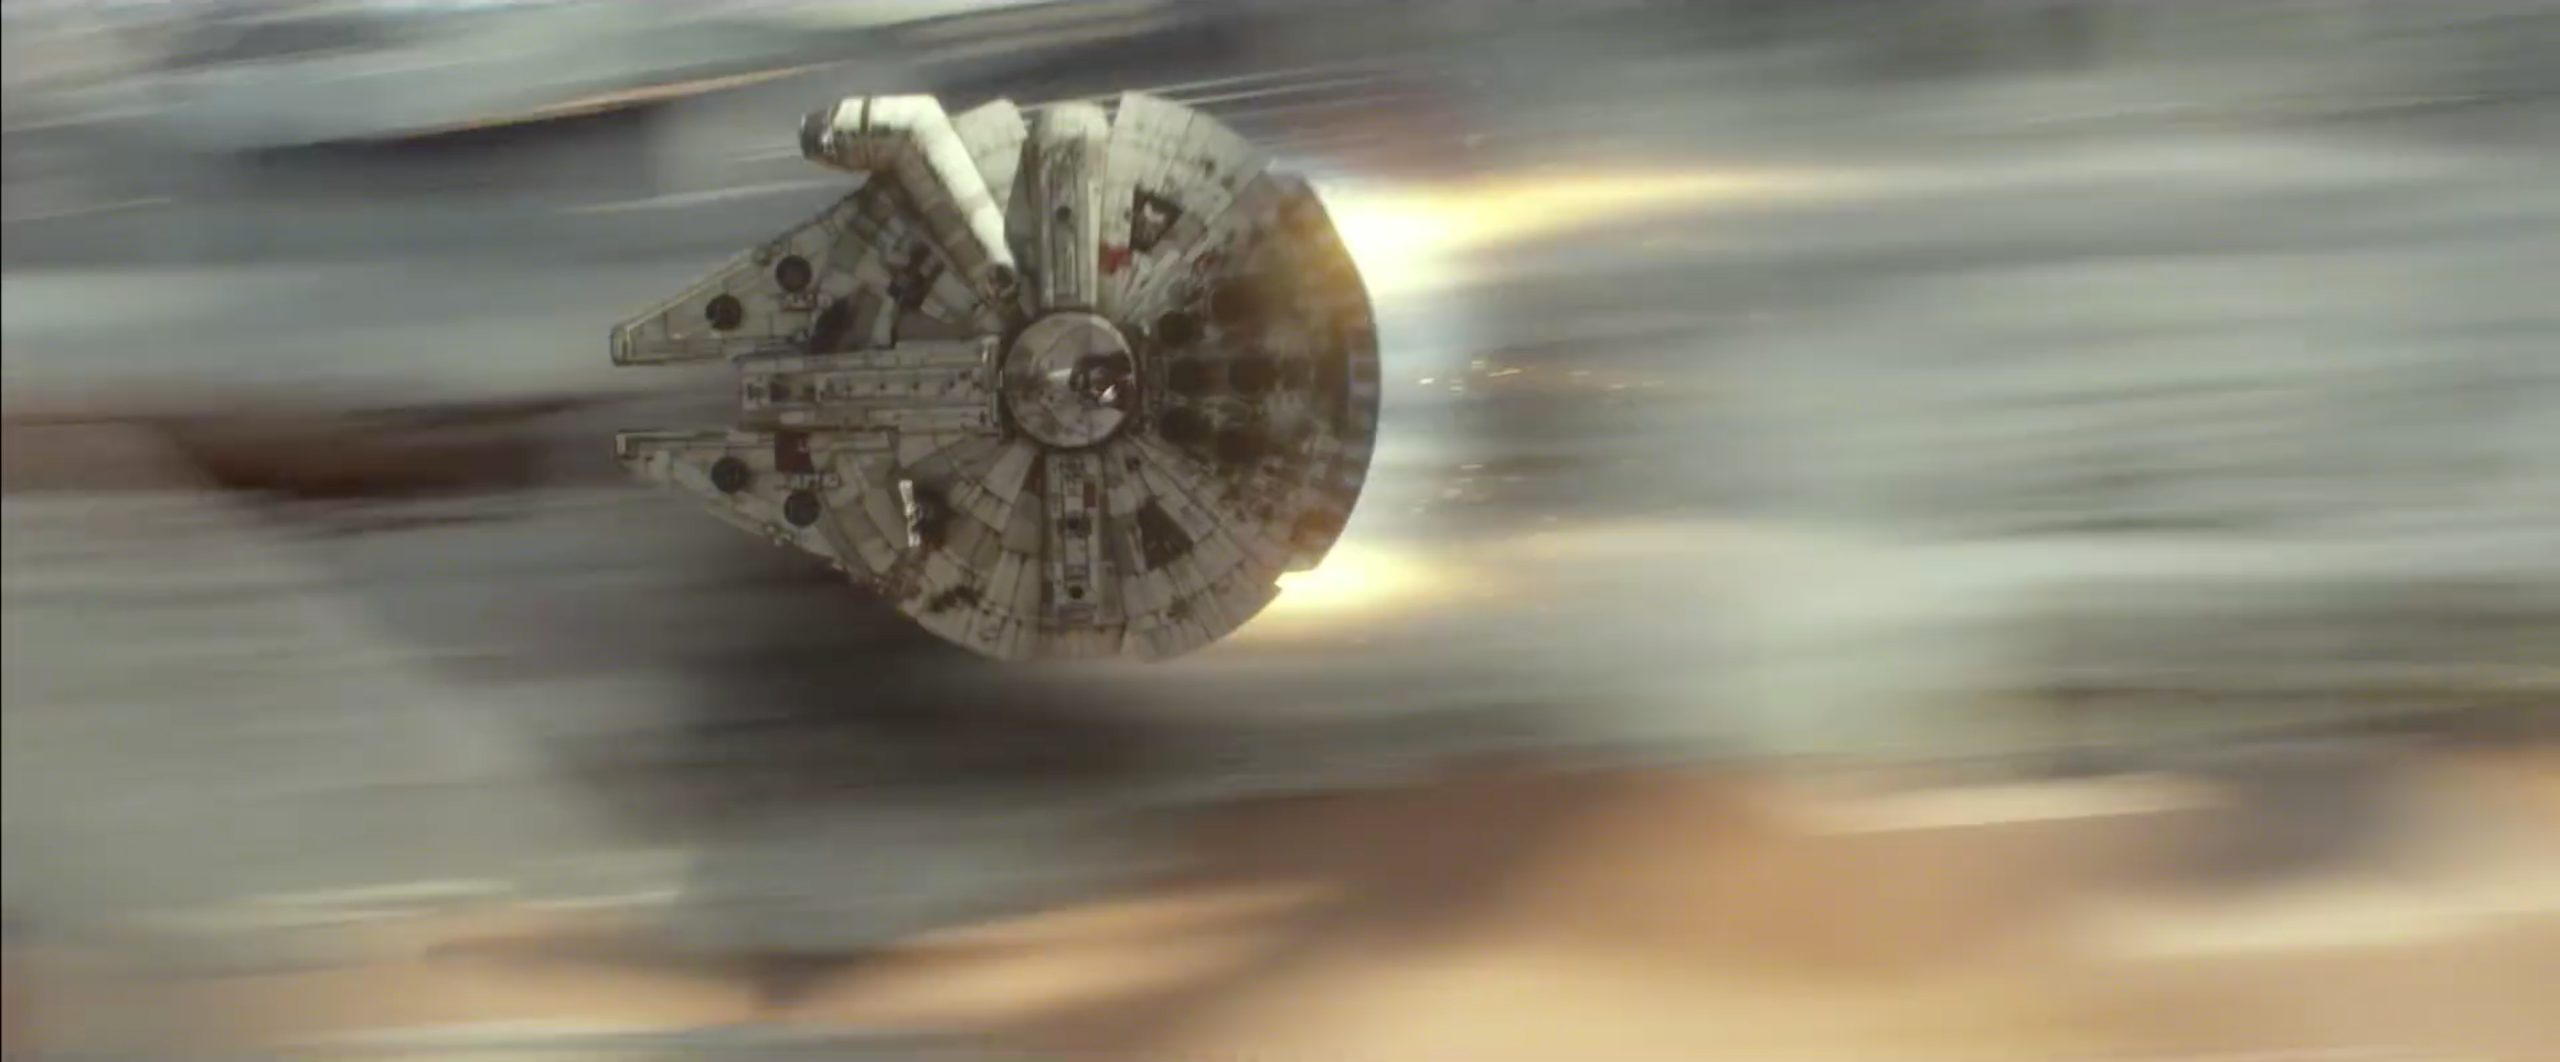 Milllenium Falcon turning up the thrusters while being chased by TIE fighters | Blurbomat.com